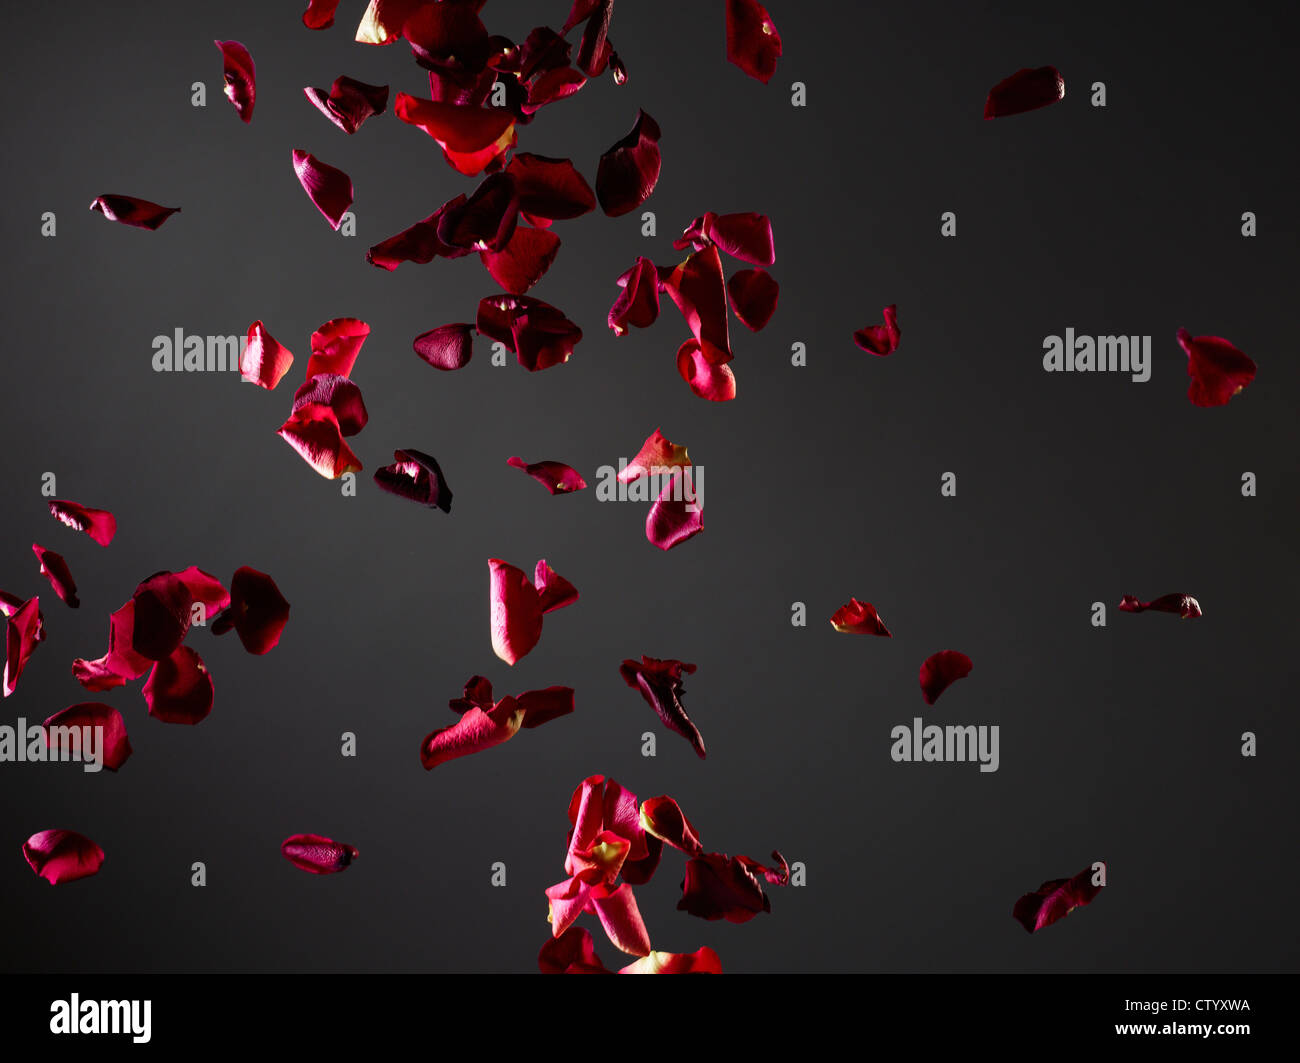 Colorful flower petals flying in air - Stock Image